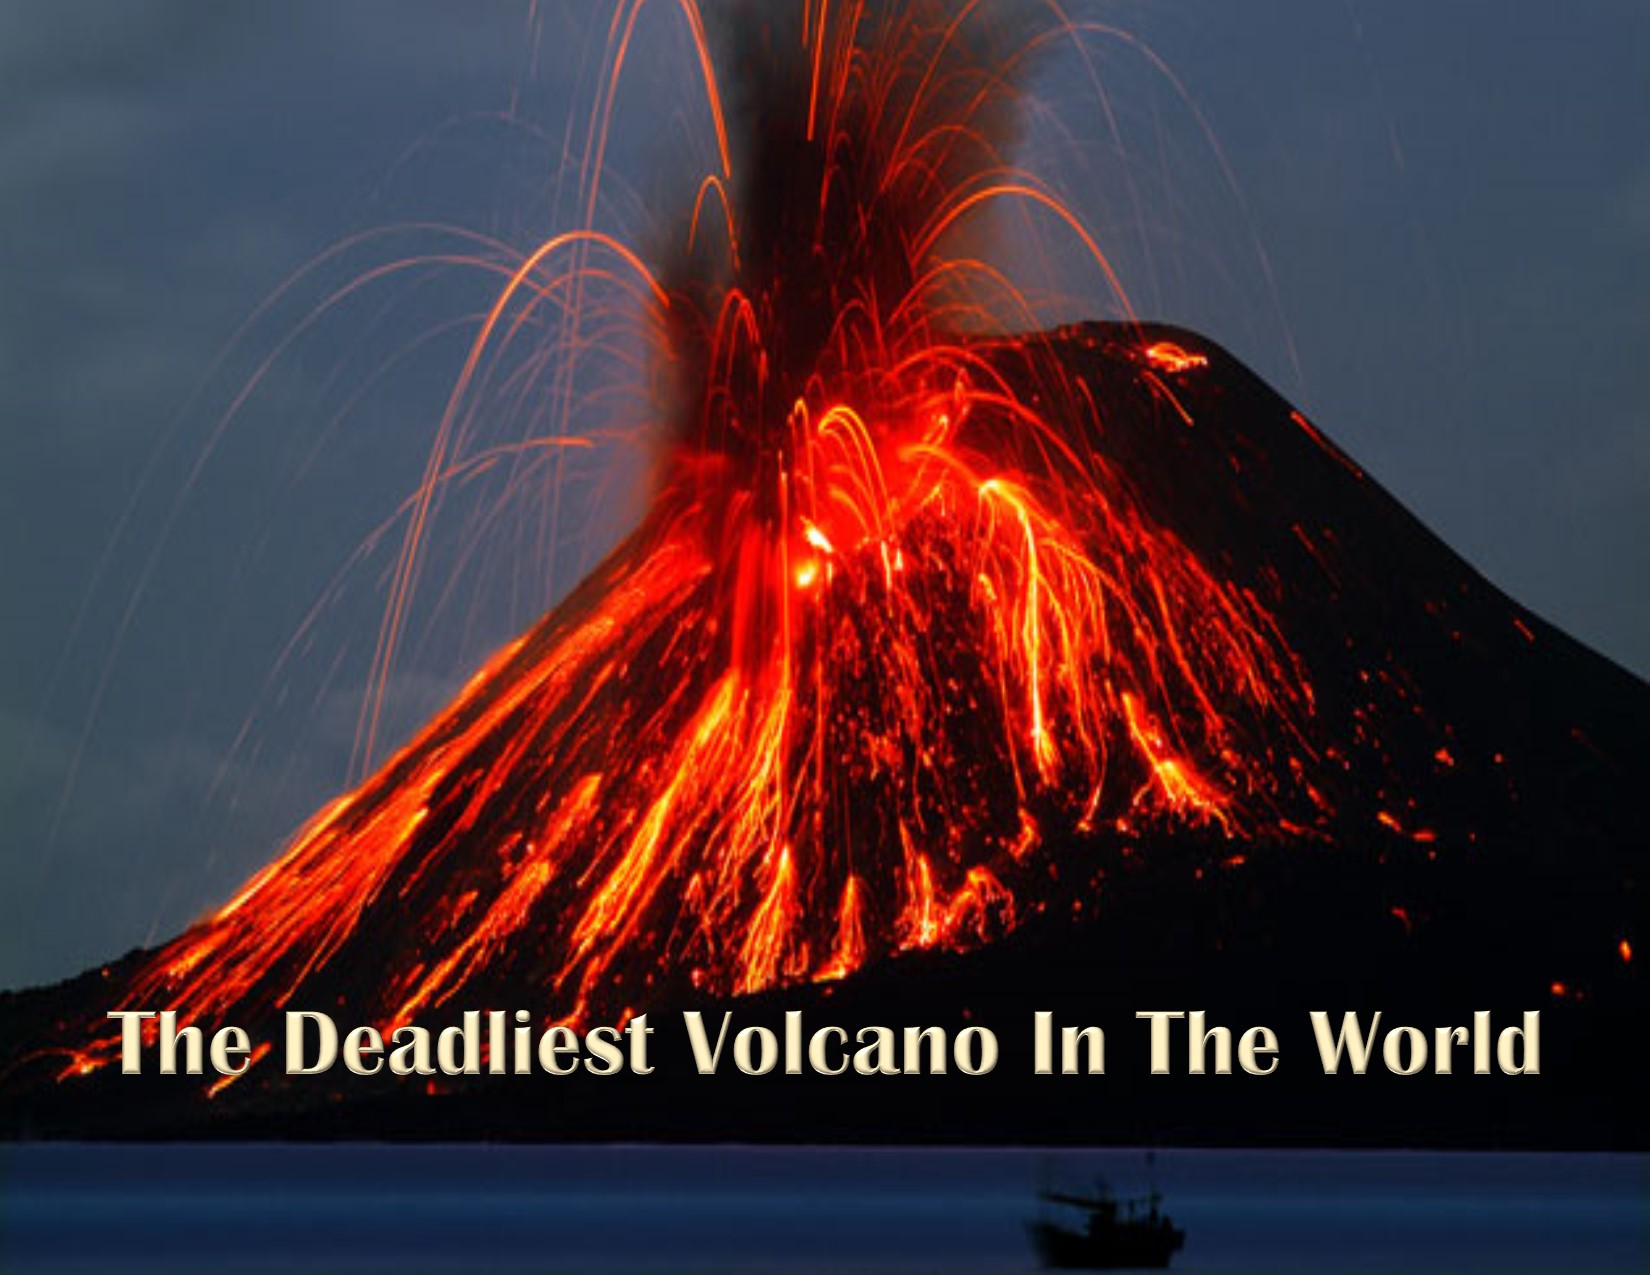 The Deadliest Volcano in the World